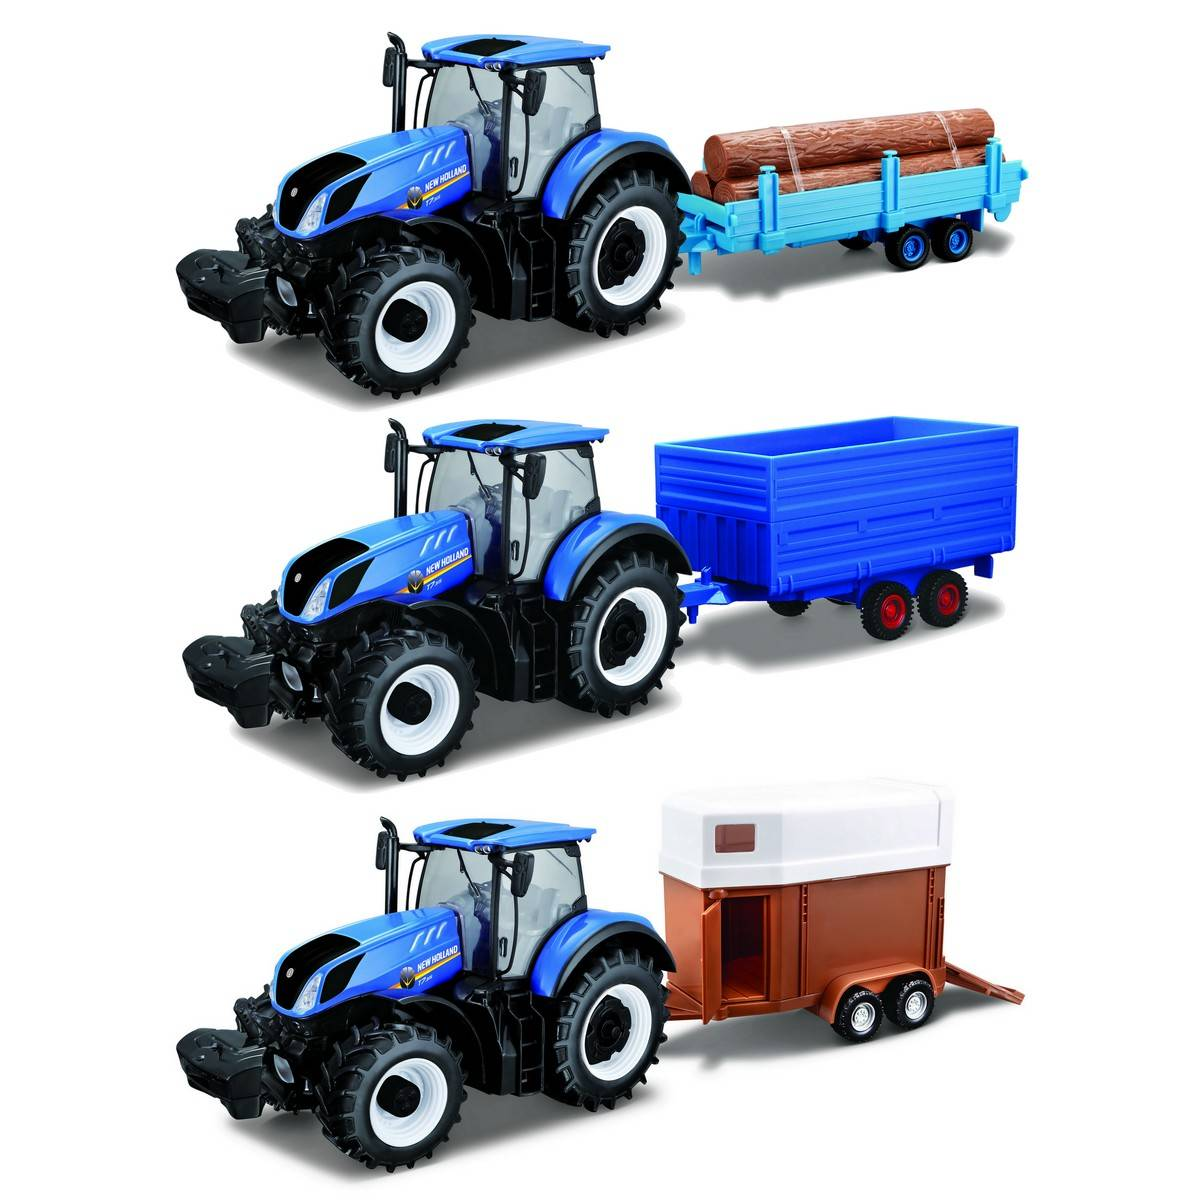 BU NEW HOLLAND FARM TRACTOR & TRAILER - Wild Willy - Toys Lebanon